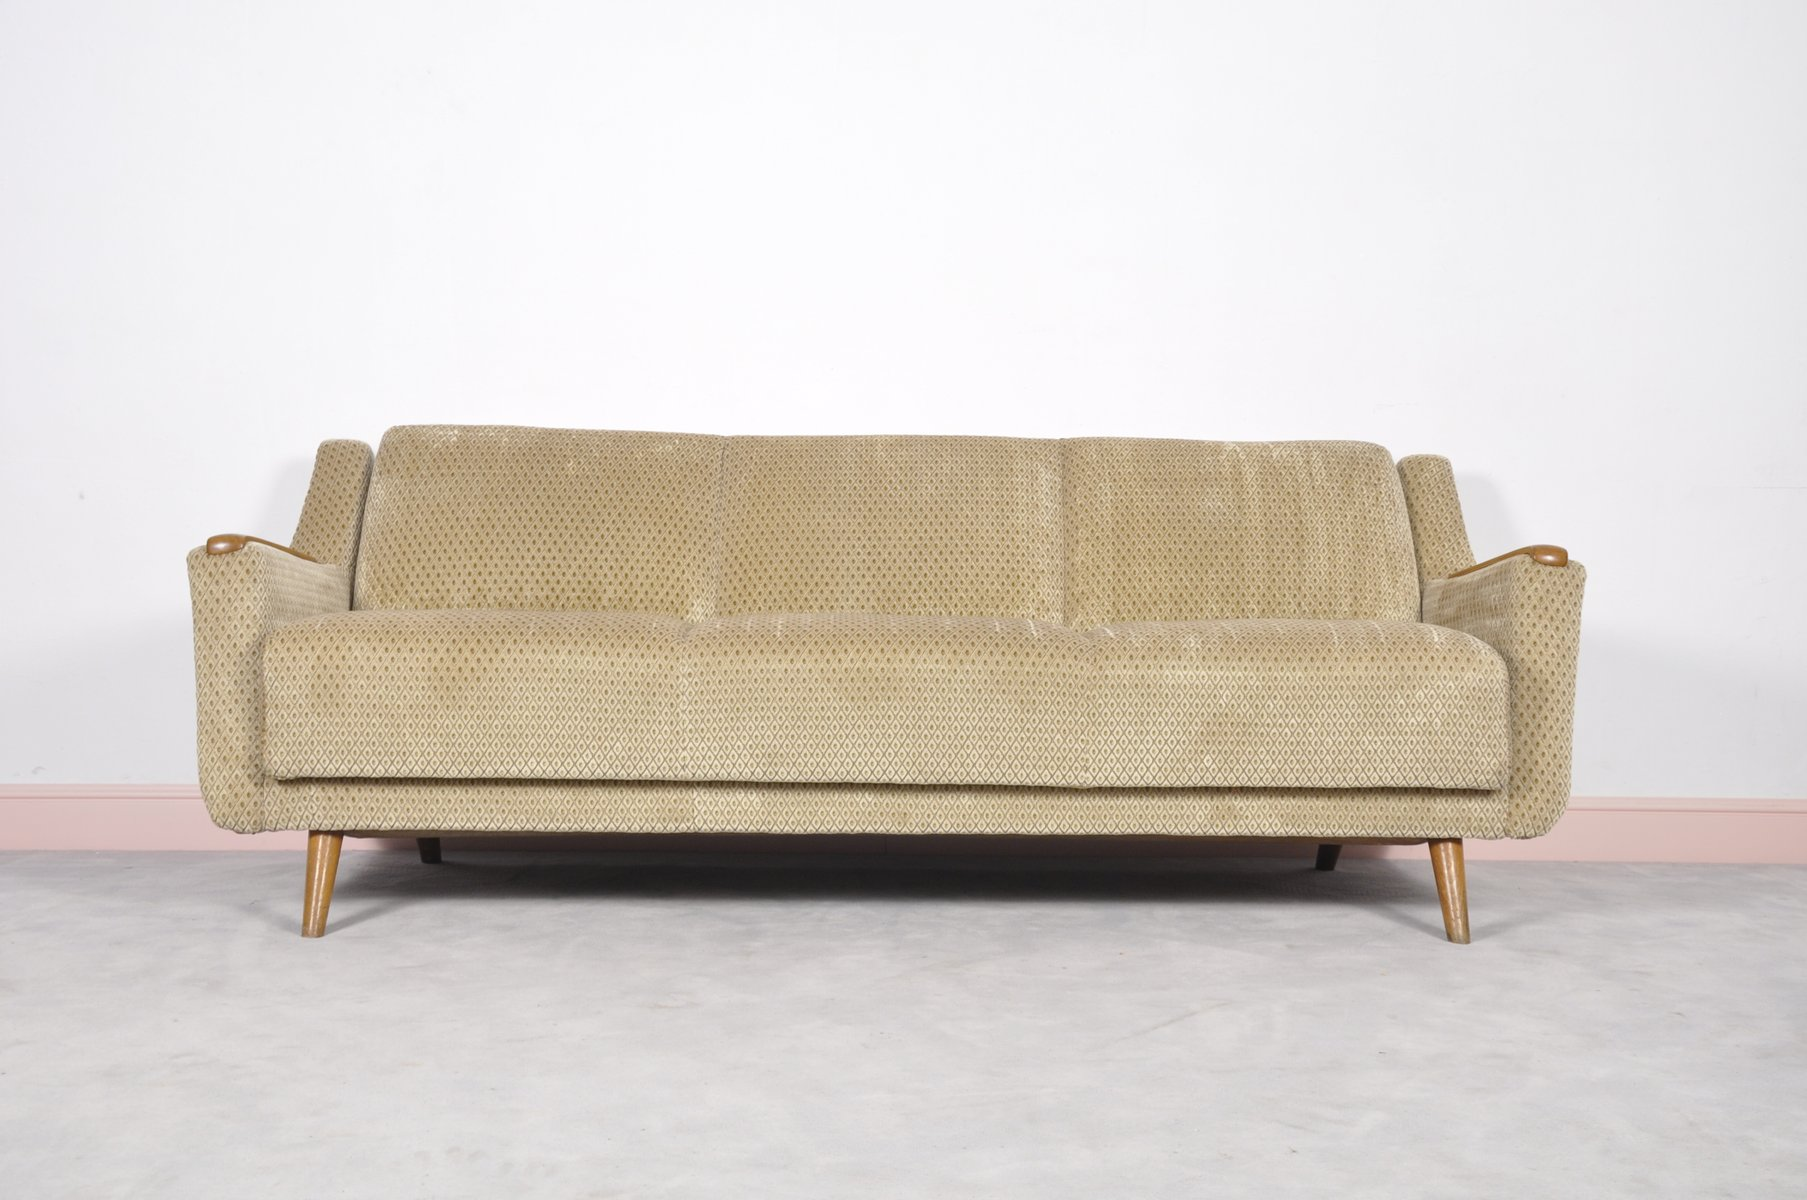 Mid Century Modern Danish Sofa Bed With Oak Arm Rests For